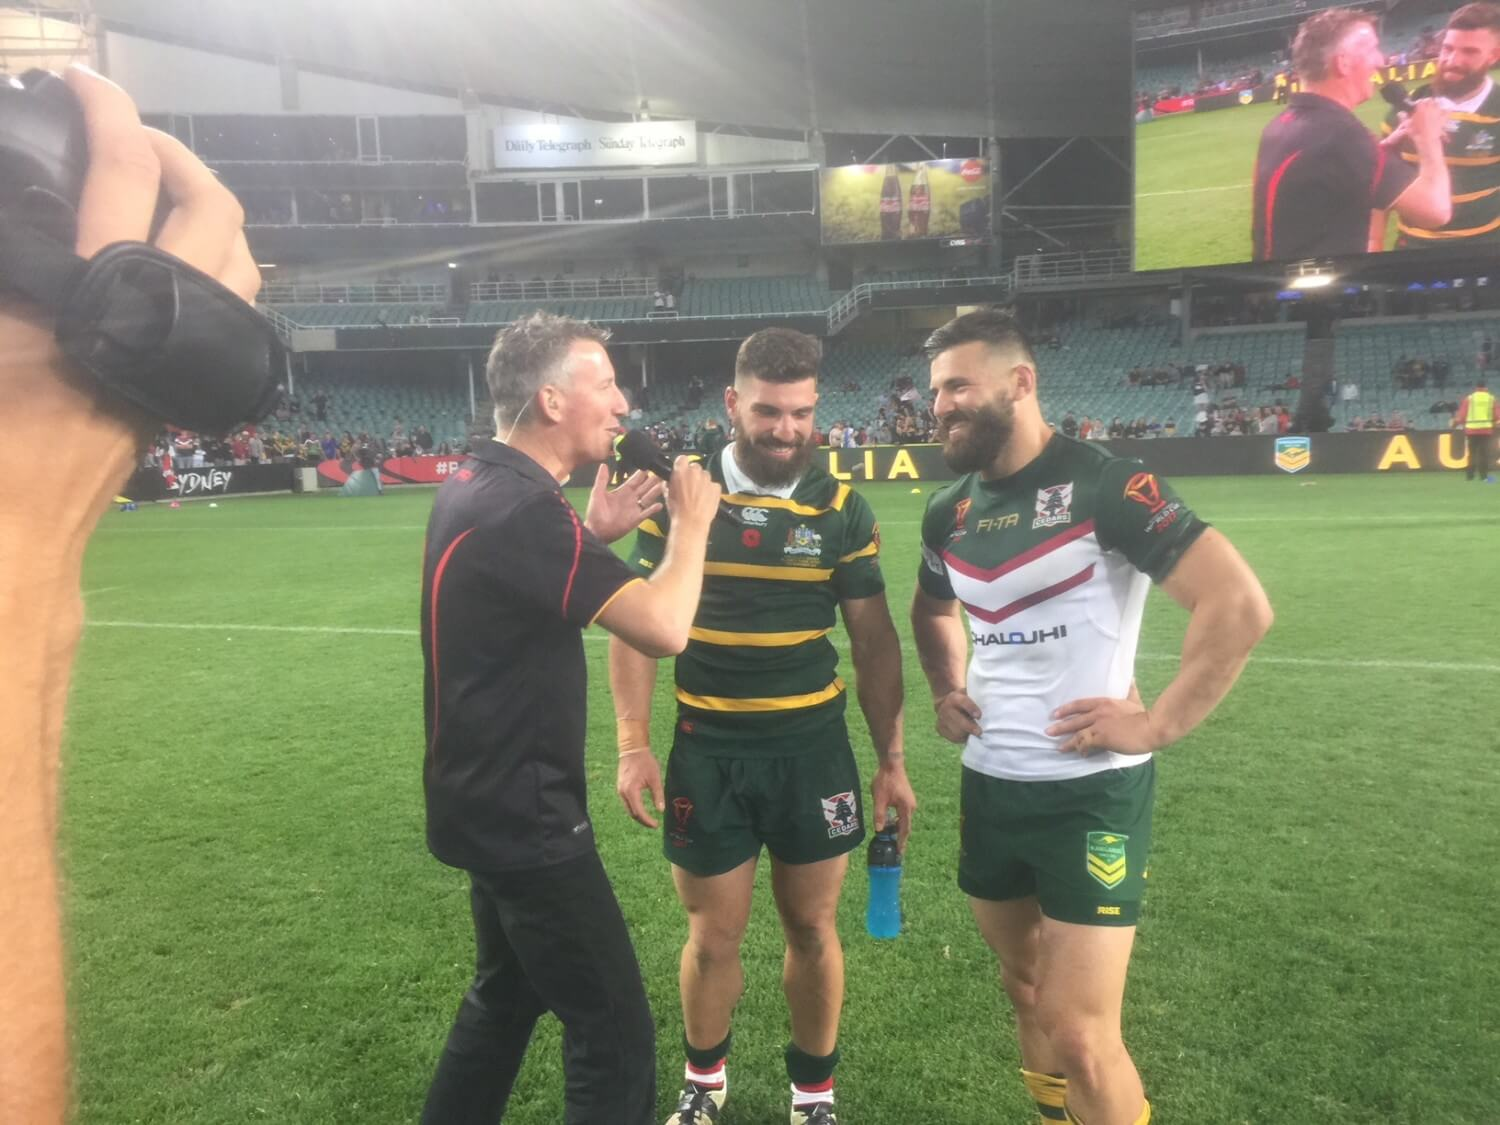 RL World Cup 2017 post match interview with the twins. Sydney Football Stadium